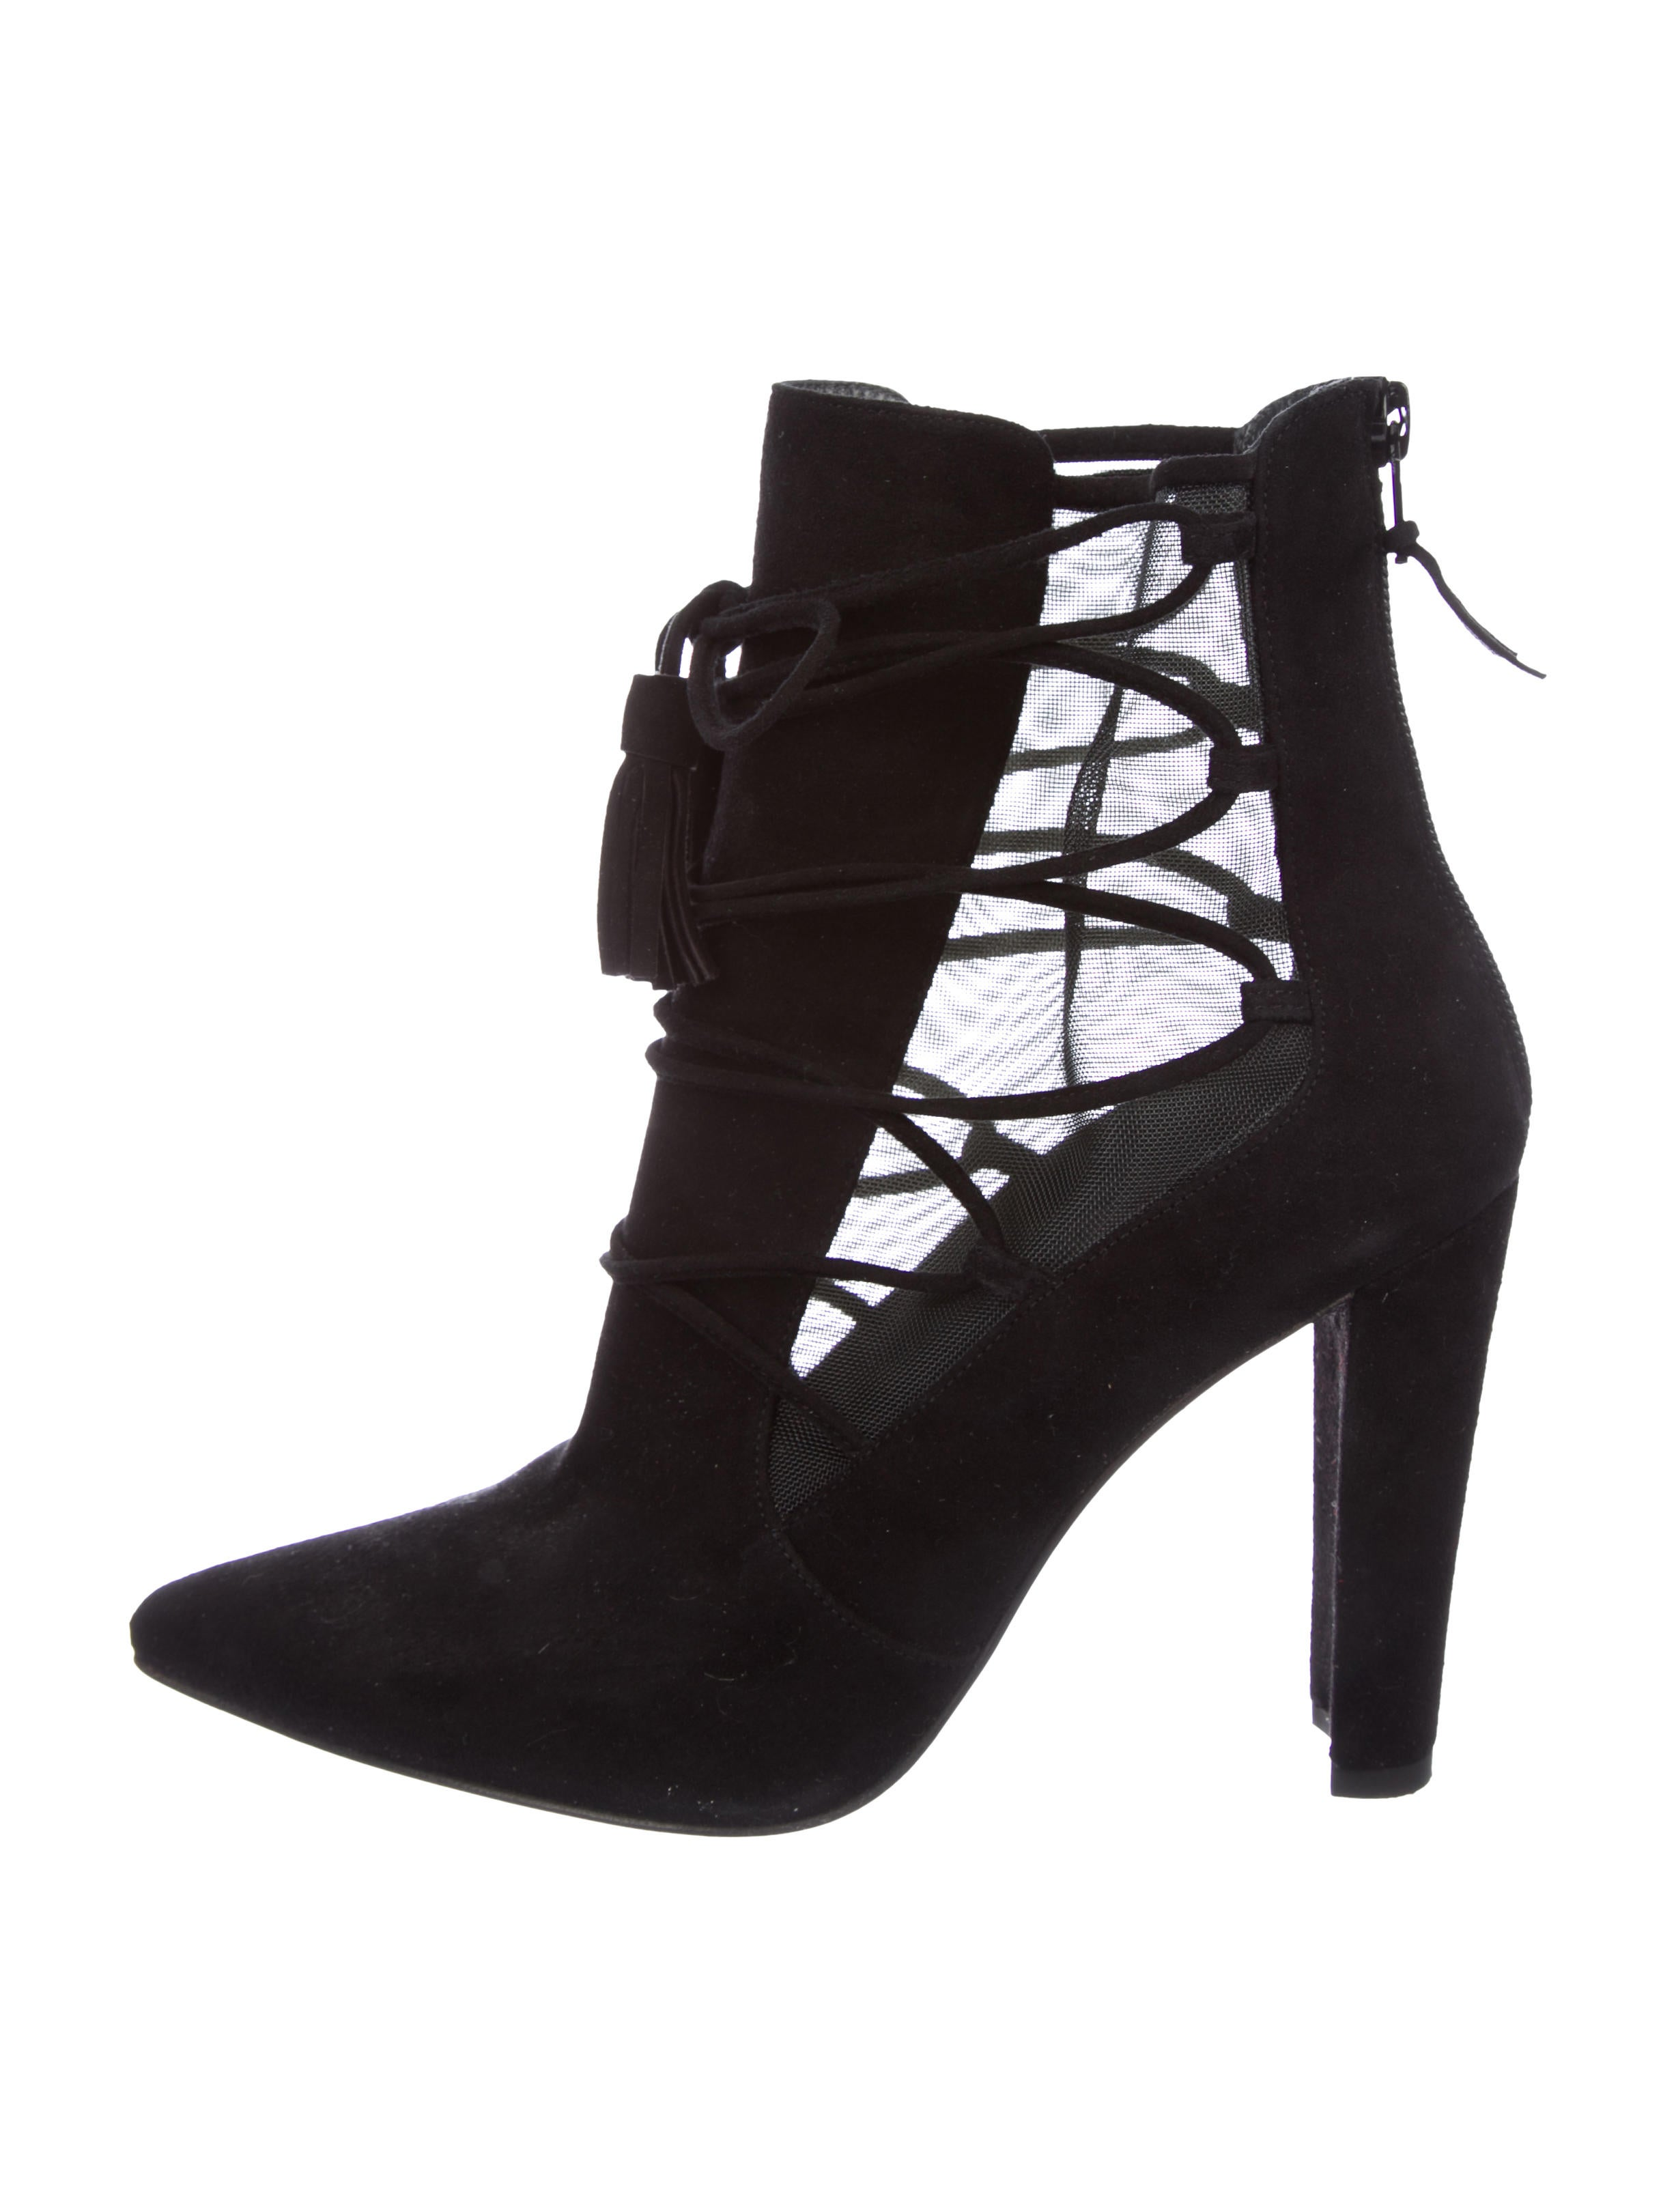 Stuart Weitzman Borderline Mesh-Accented Ankle Boots real cheap price sale fashion Style LAC9VUE